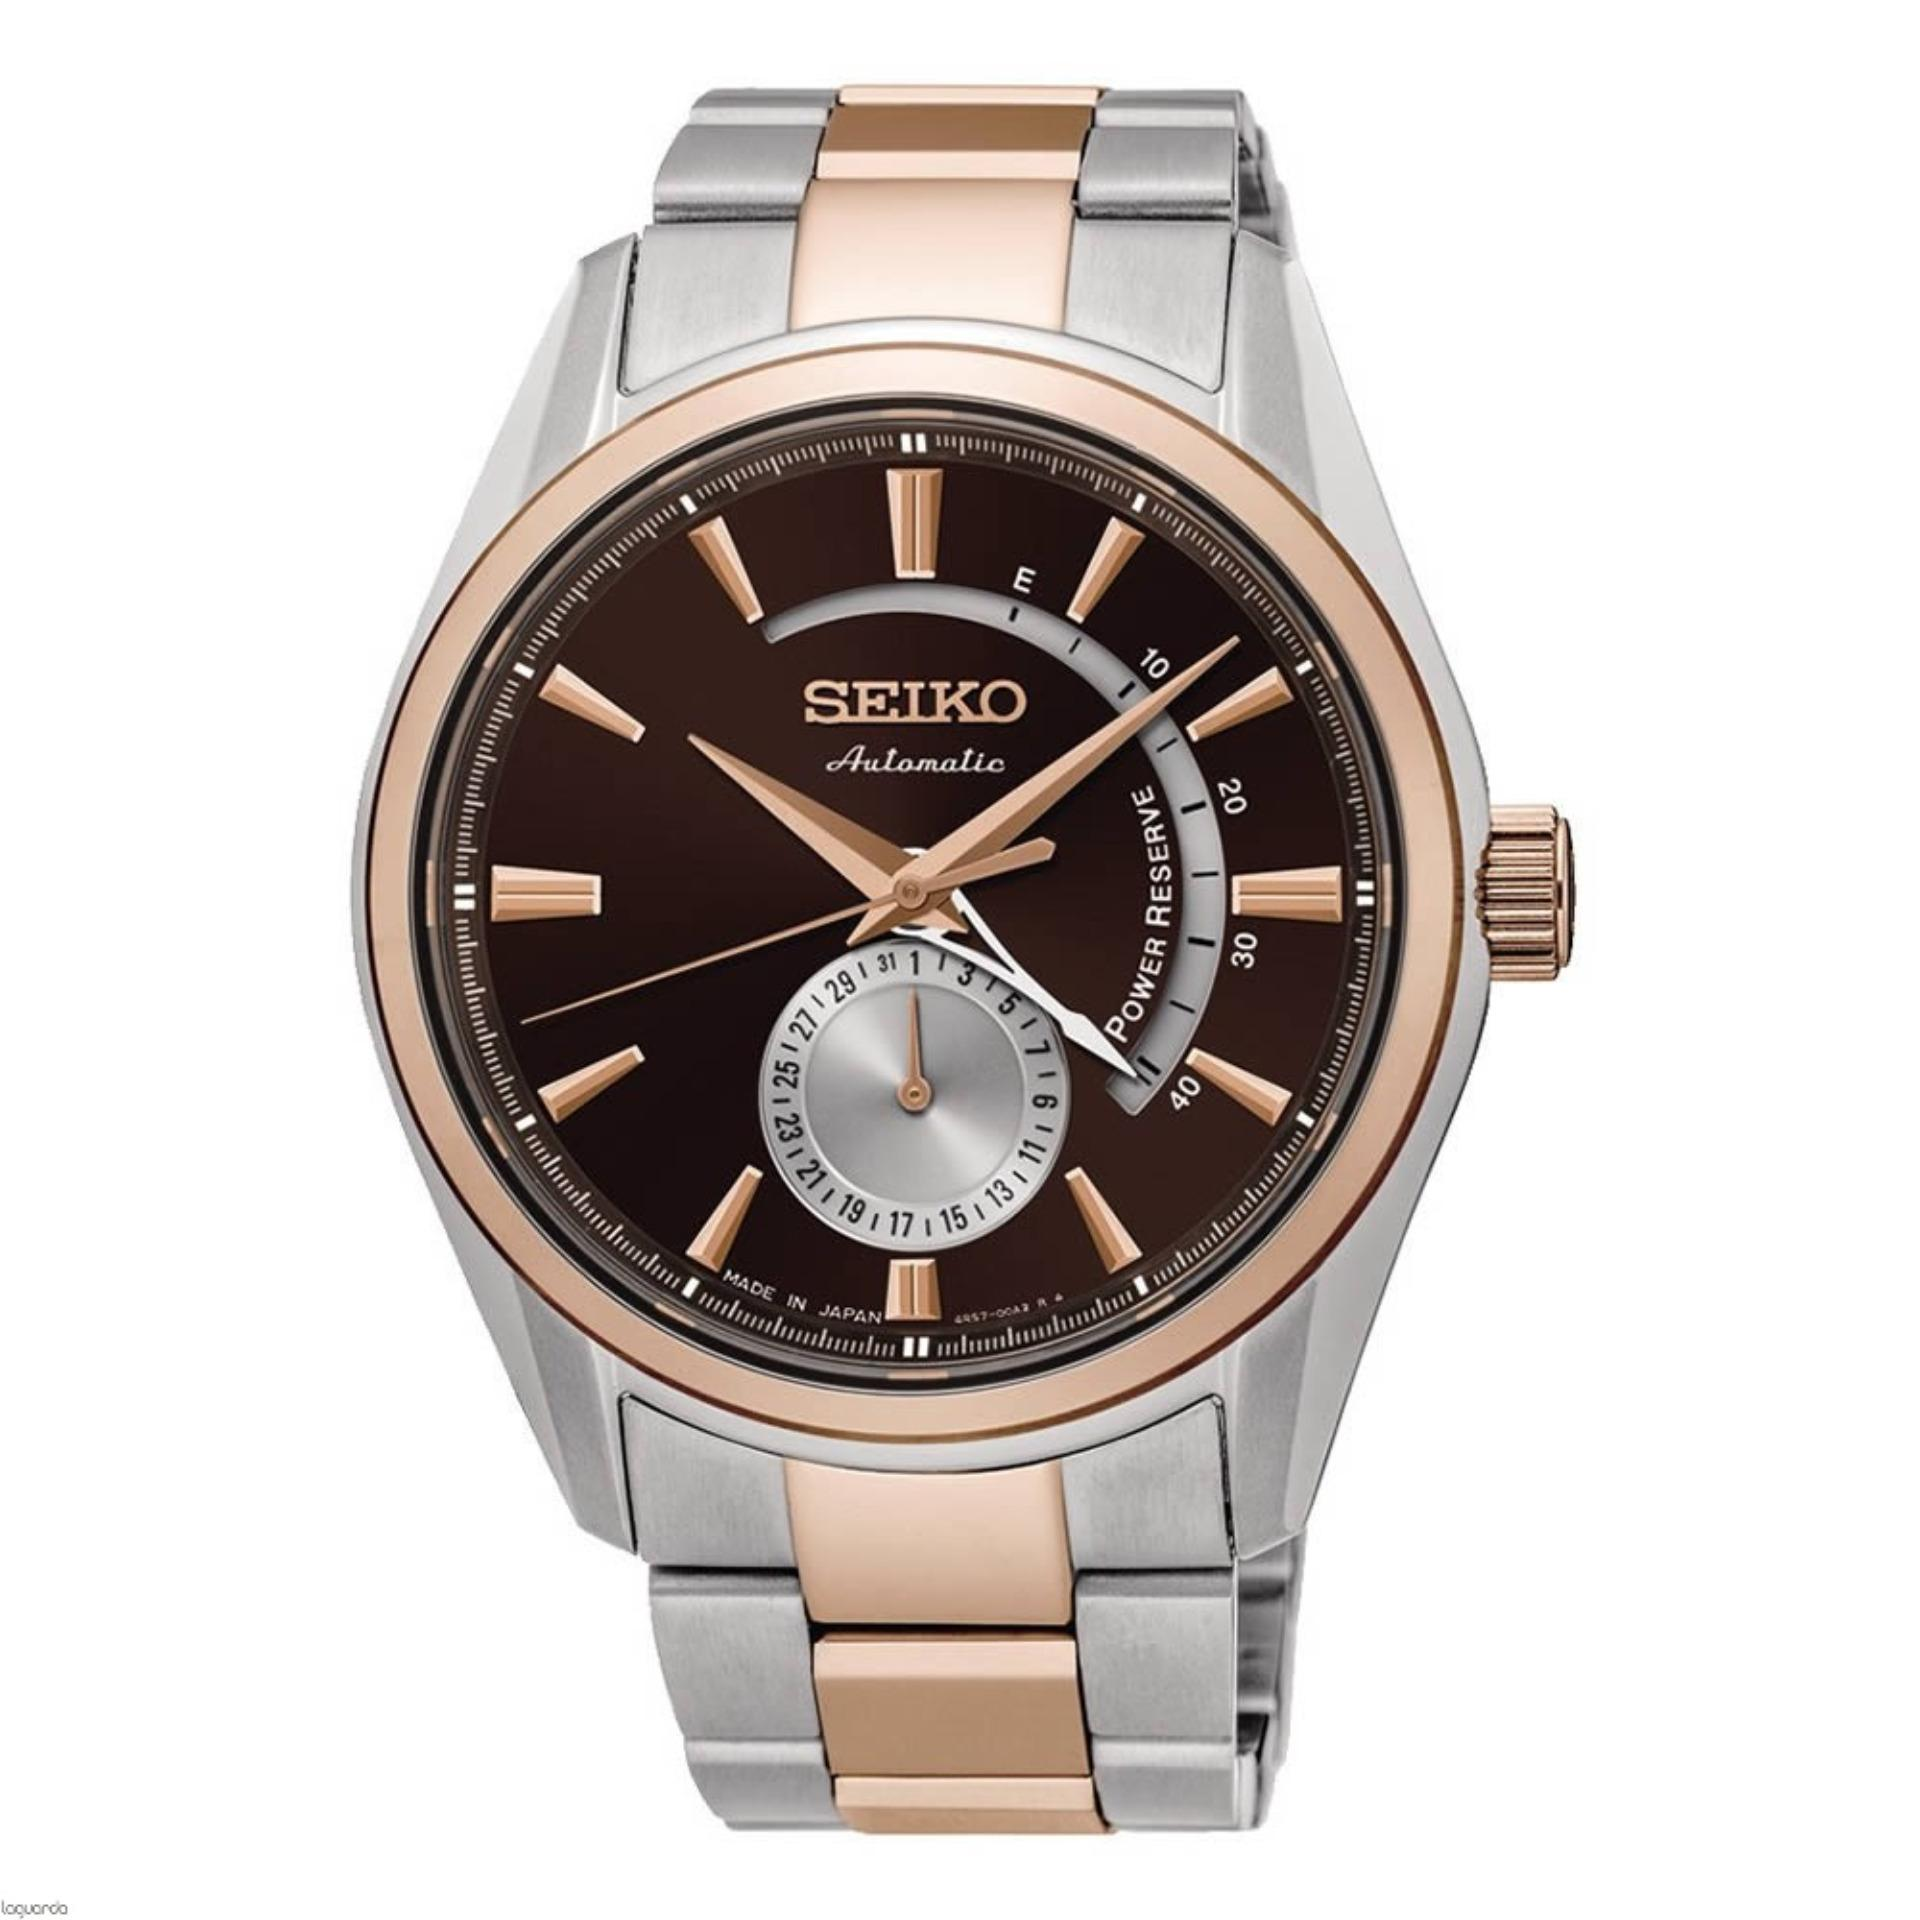 Seiko 5 Automatic Jam Tangan Pria Gold Stainless Steel 26nkns5 Christ Verra 72025g 13 Silver Sport Presage Strap Stell